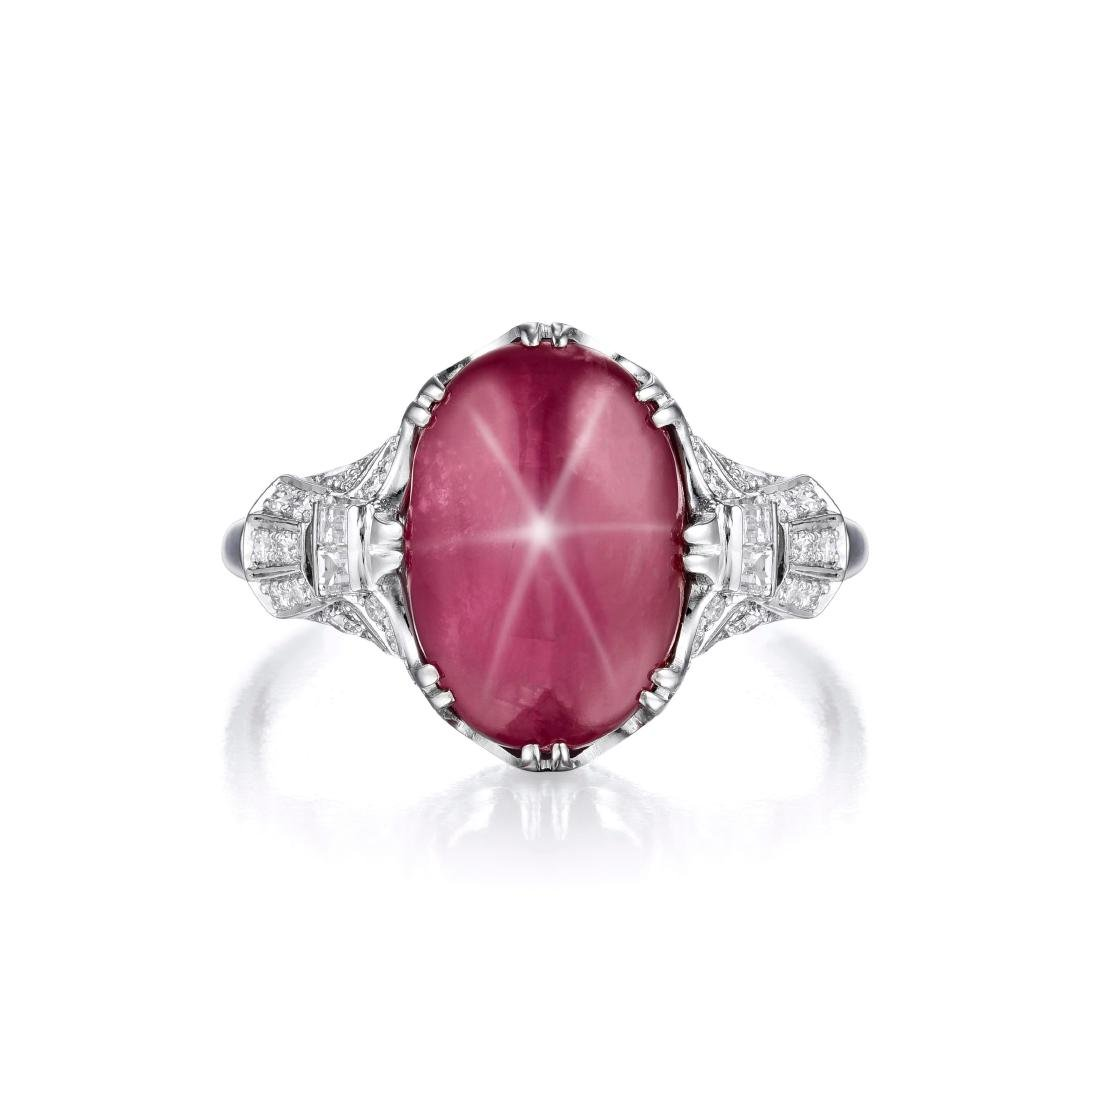 A Star Ruby Platinum Ring